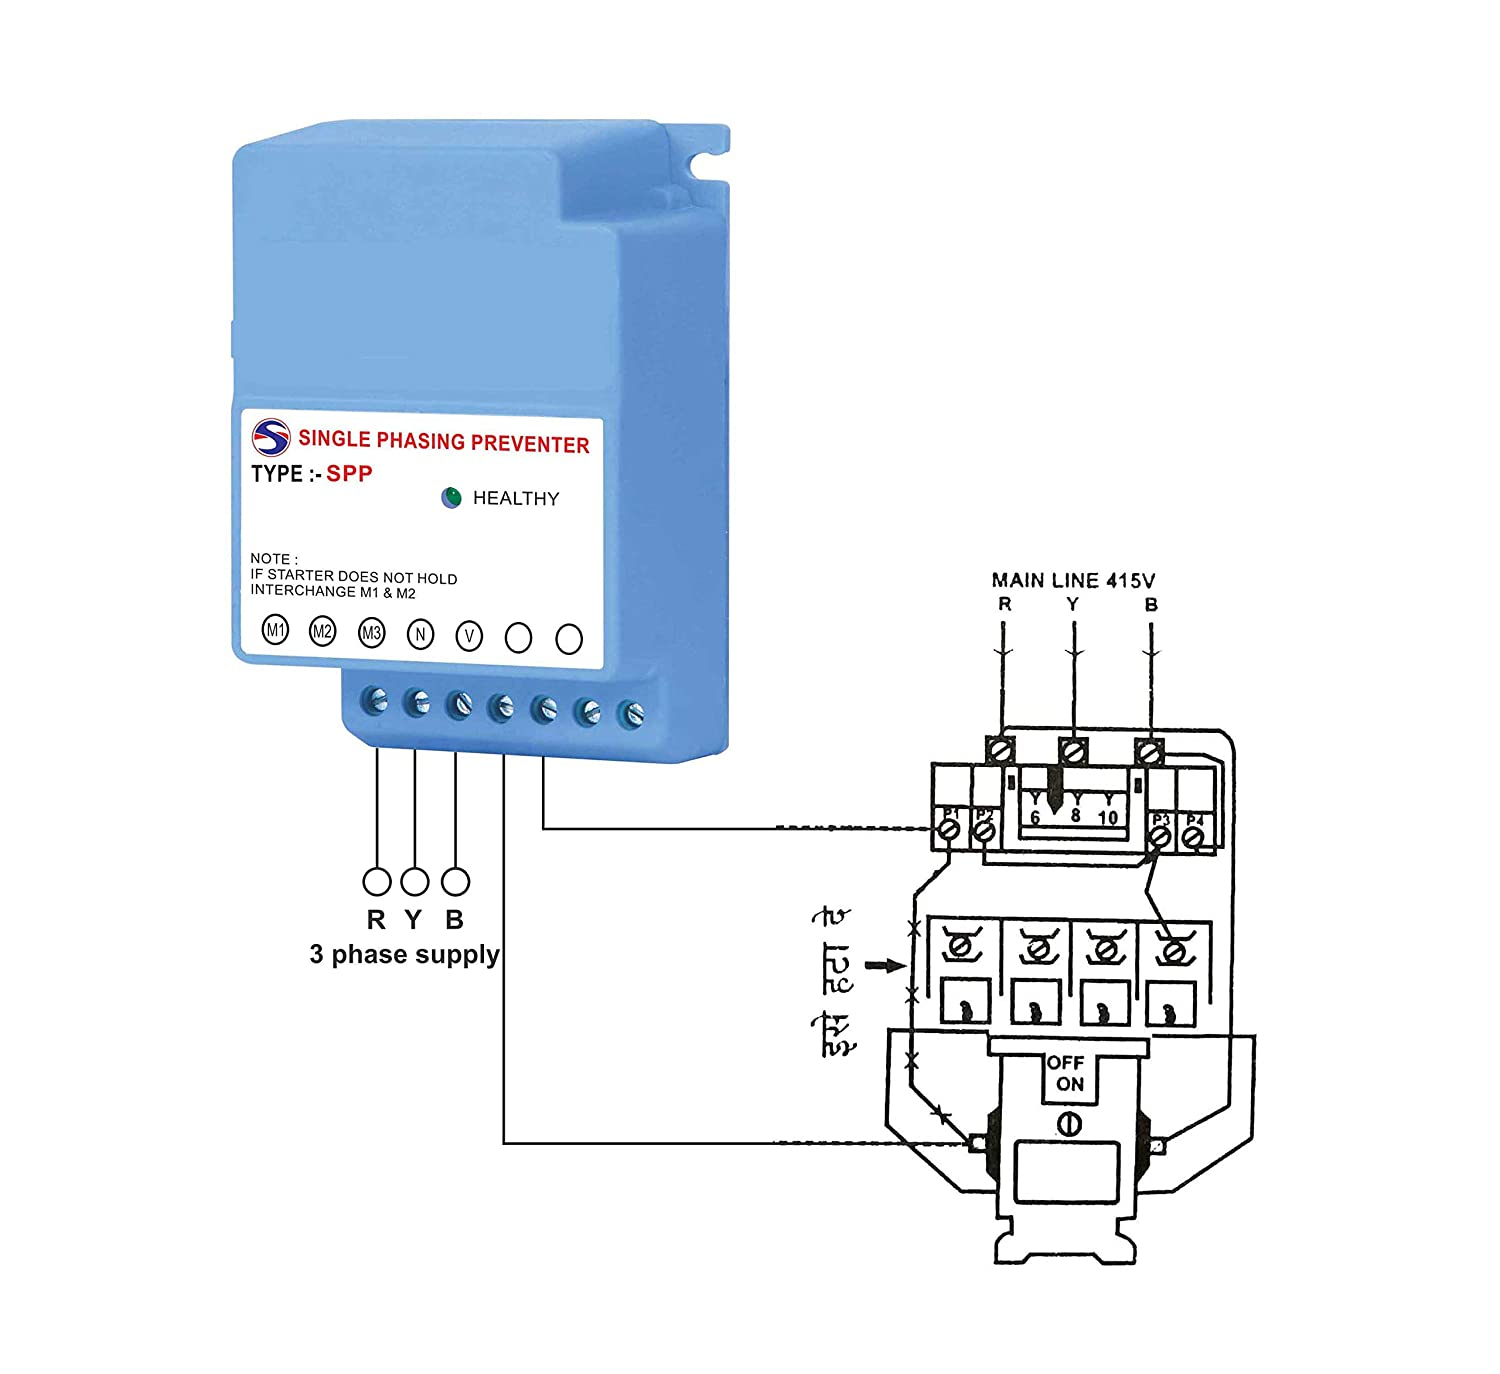 Buy Spp Single Phasing Preventer For Three Phase Panel Online At Low 3 Motor Reversing Switch Wiring Diagram Free Picture Prices In India